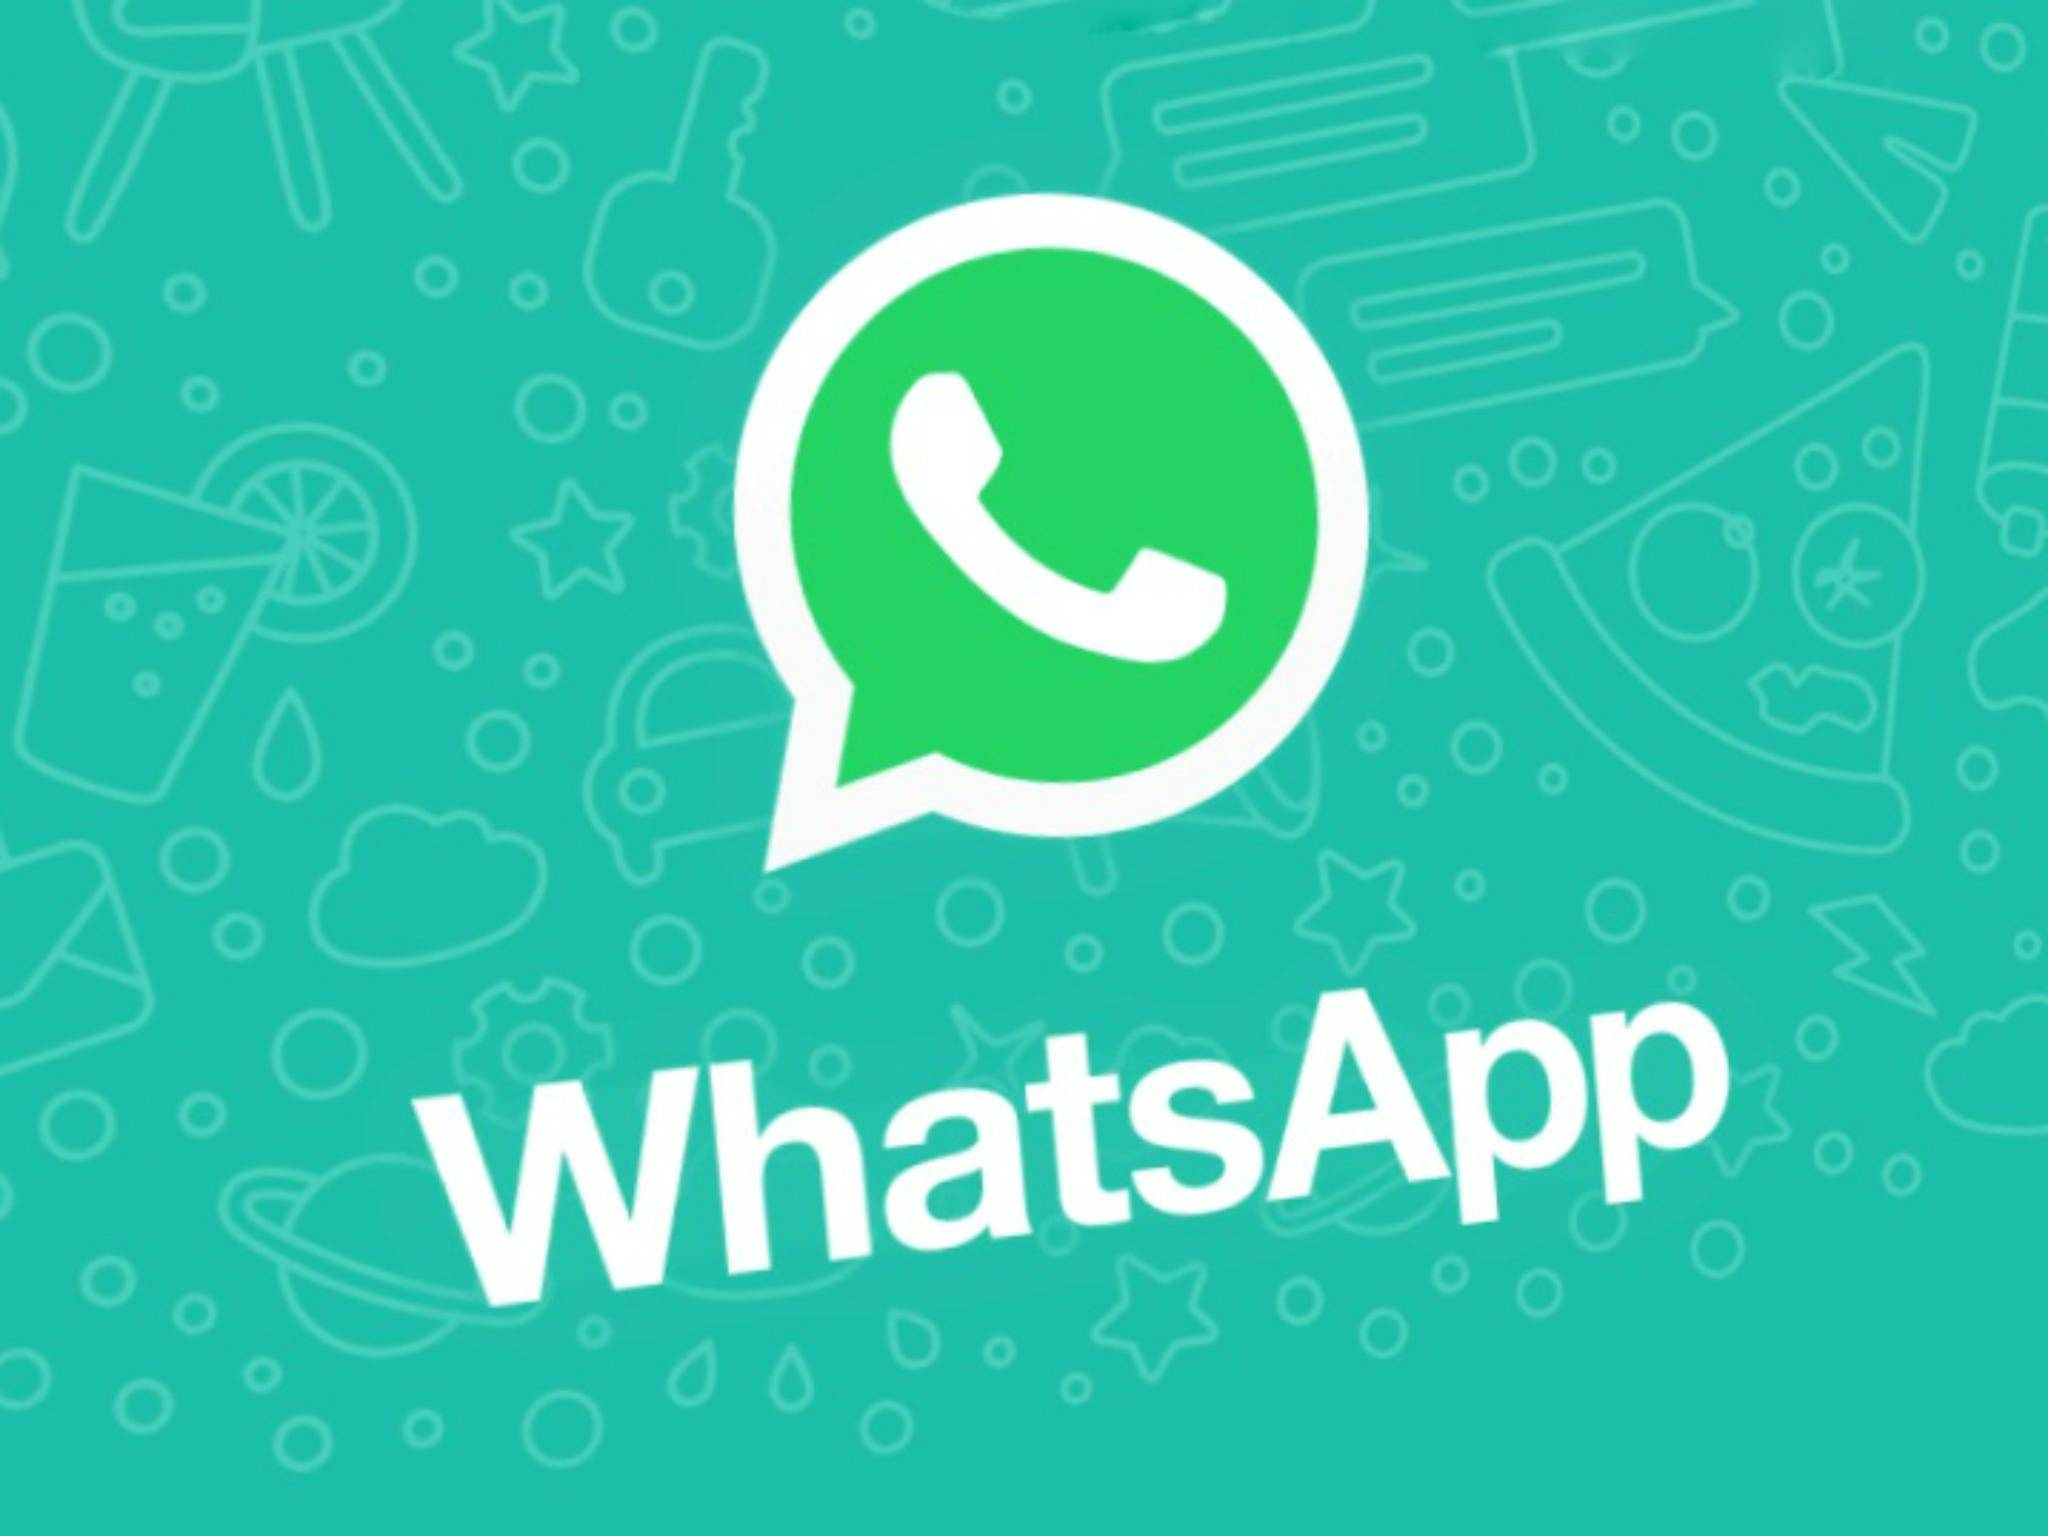 Even deleted WhatsApp messages can be read; find out how